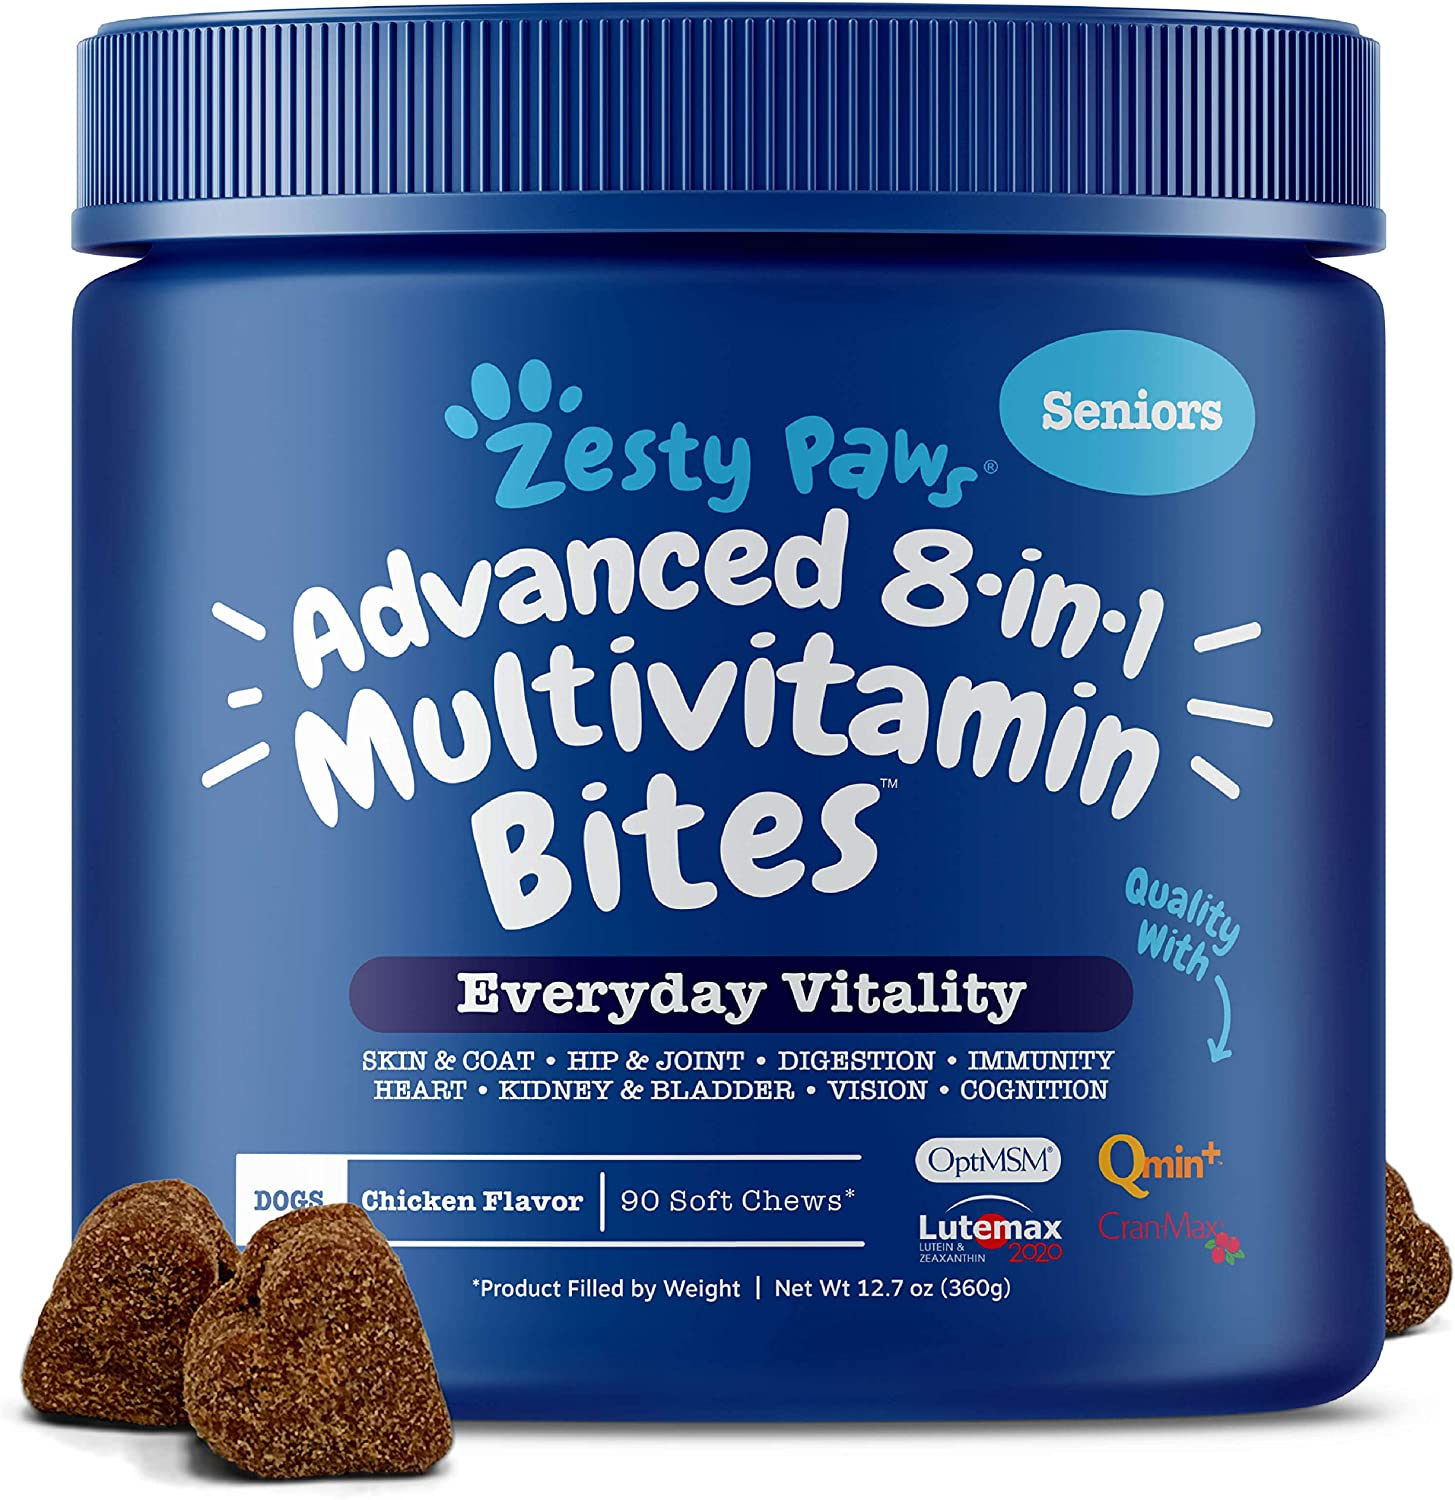 Zesty Paws Senior Advanced Multivitamins For Dogs